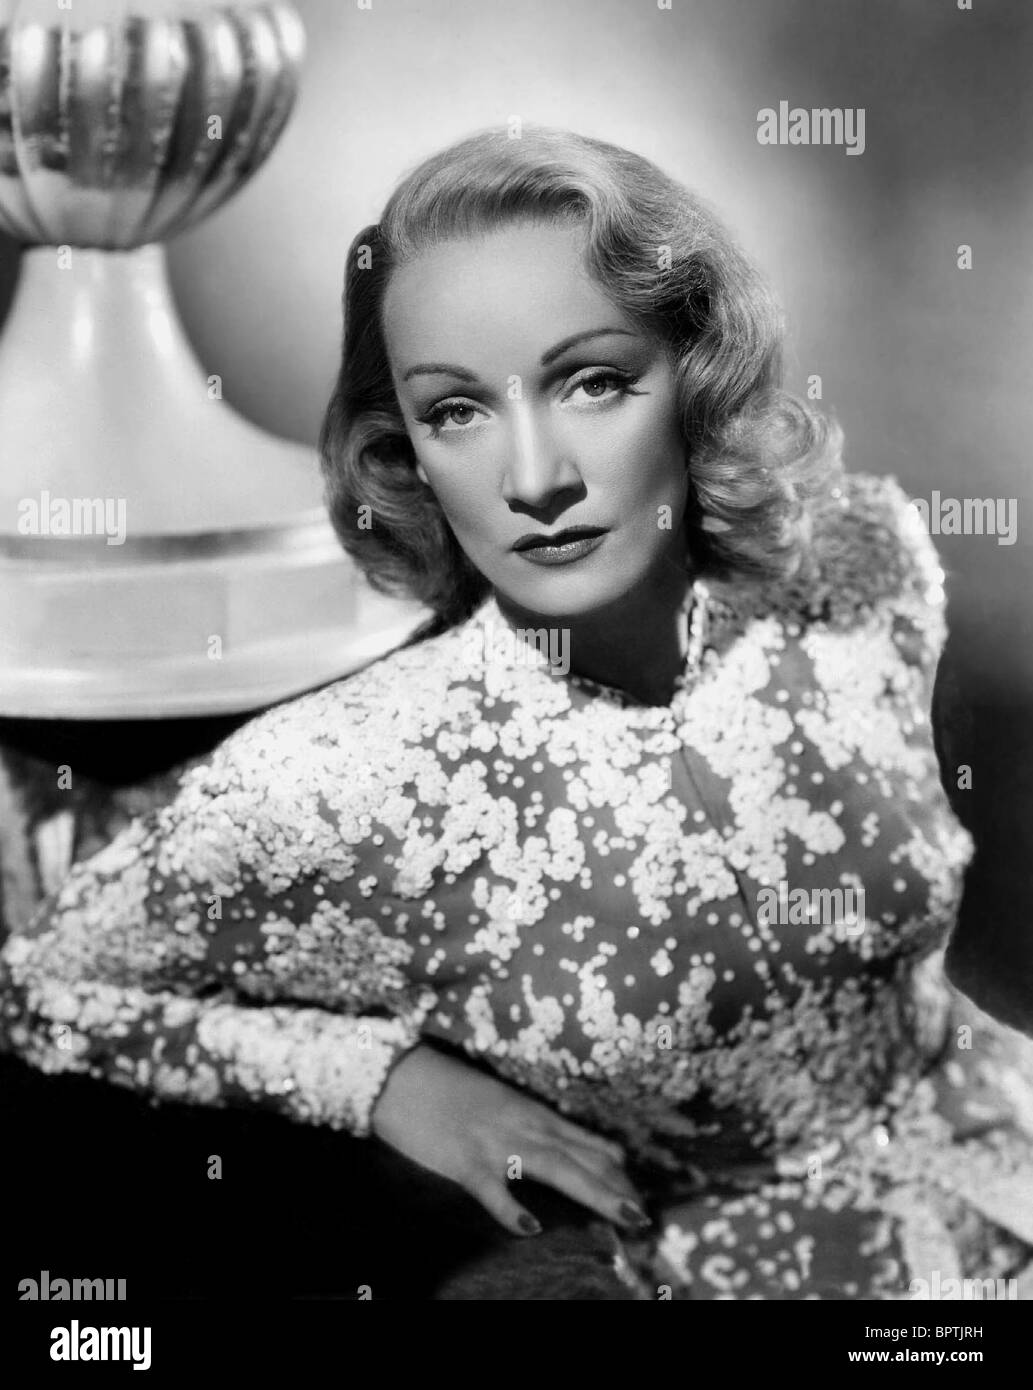 MARLENE DIETRICH ACTRESS (1946) - Stock Image